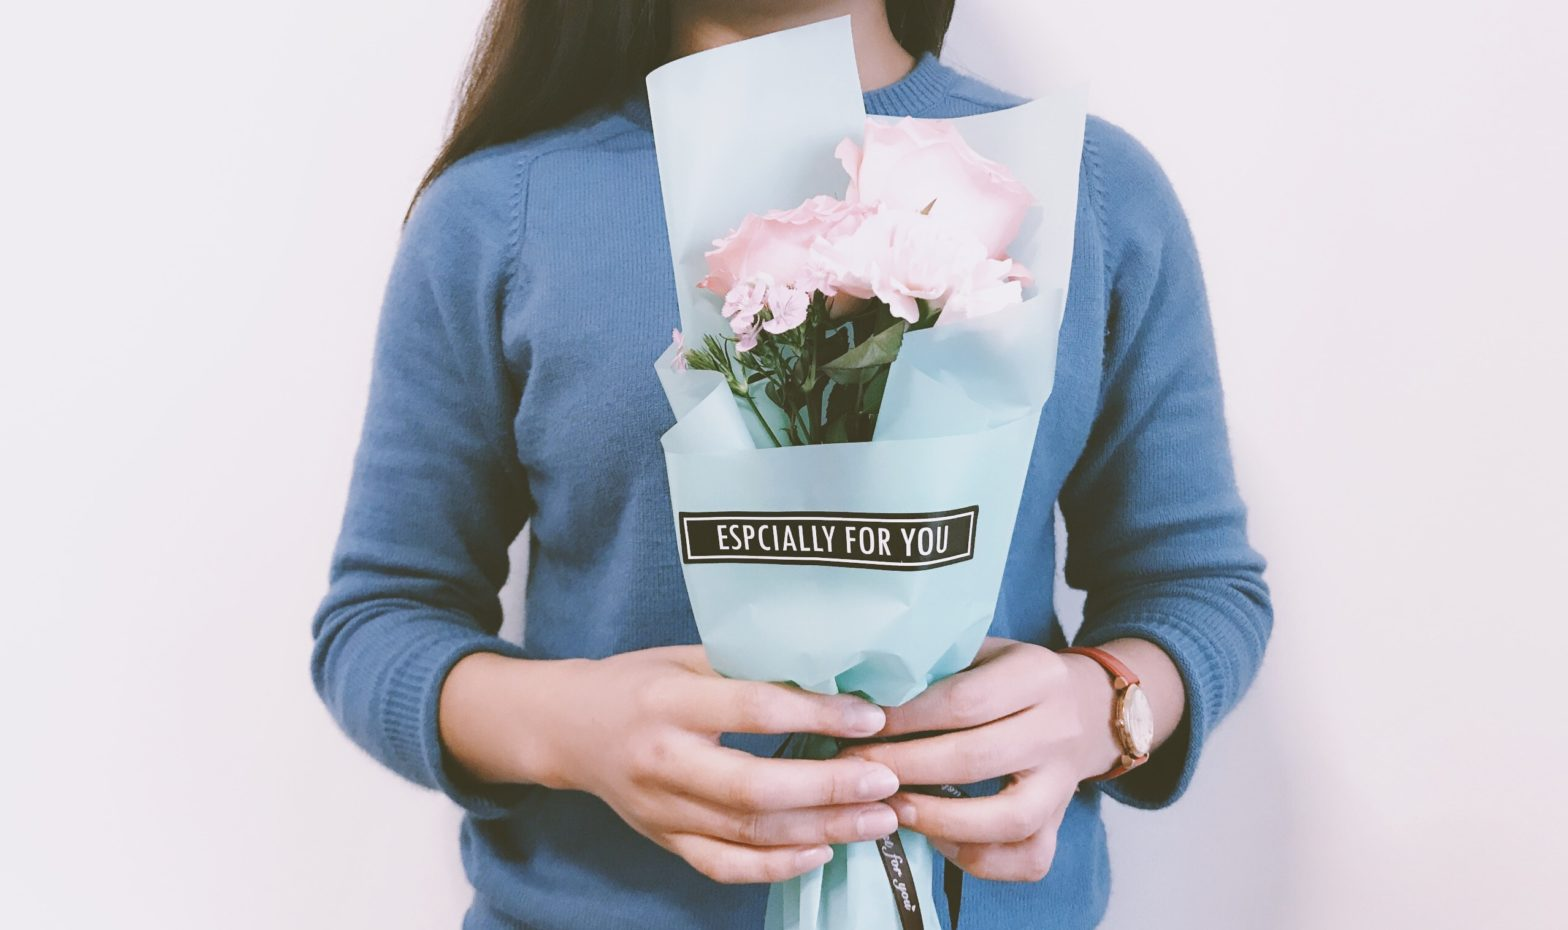 Woman receiving flowers that say especially for you.